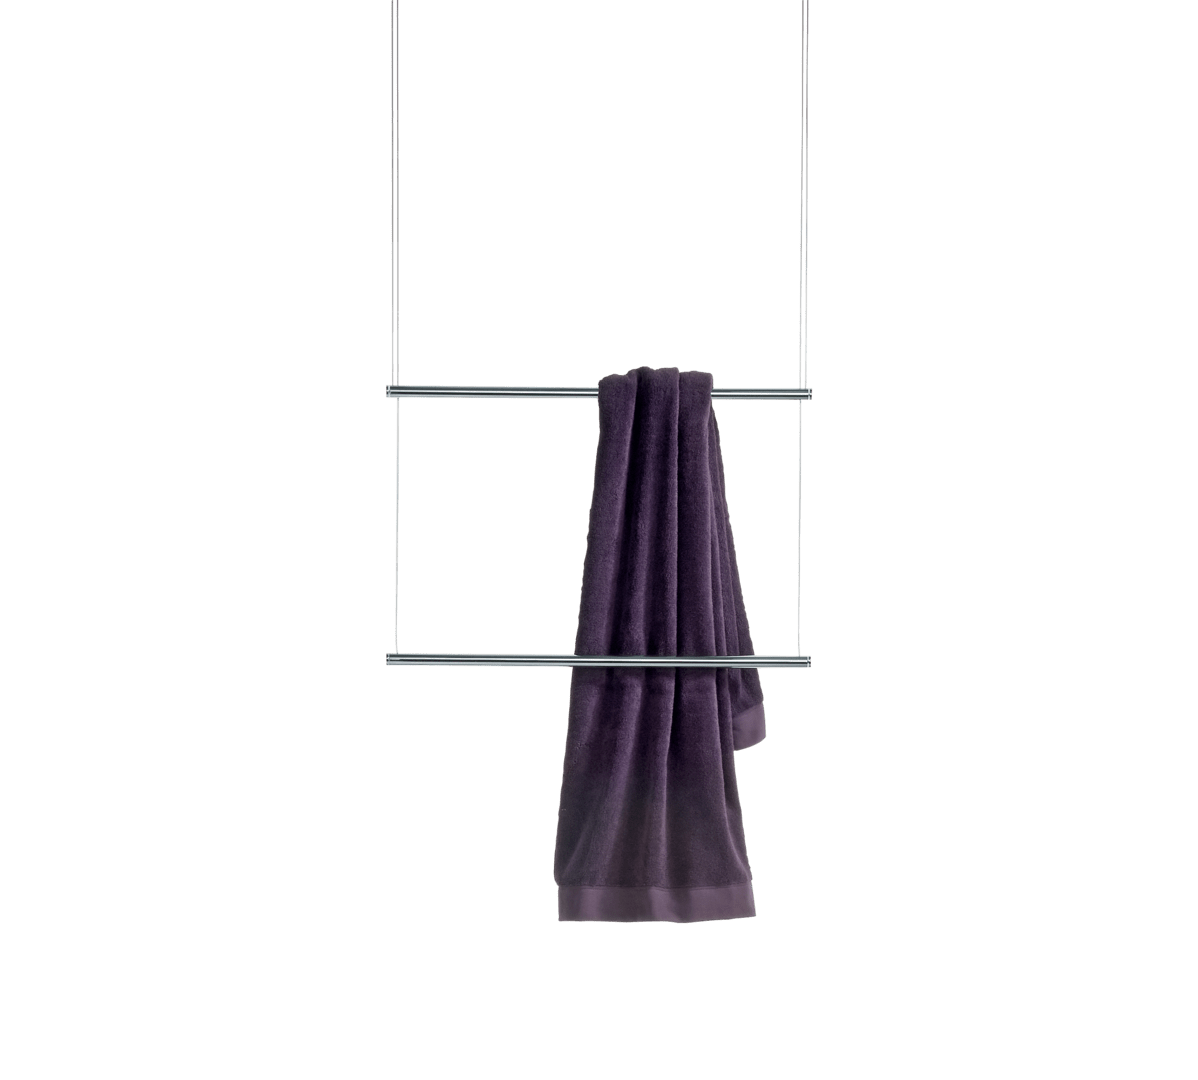 Decor Walther Towel Rail Move Decor Walther